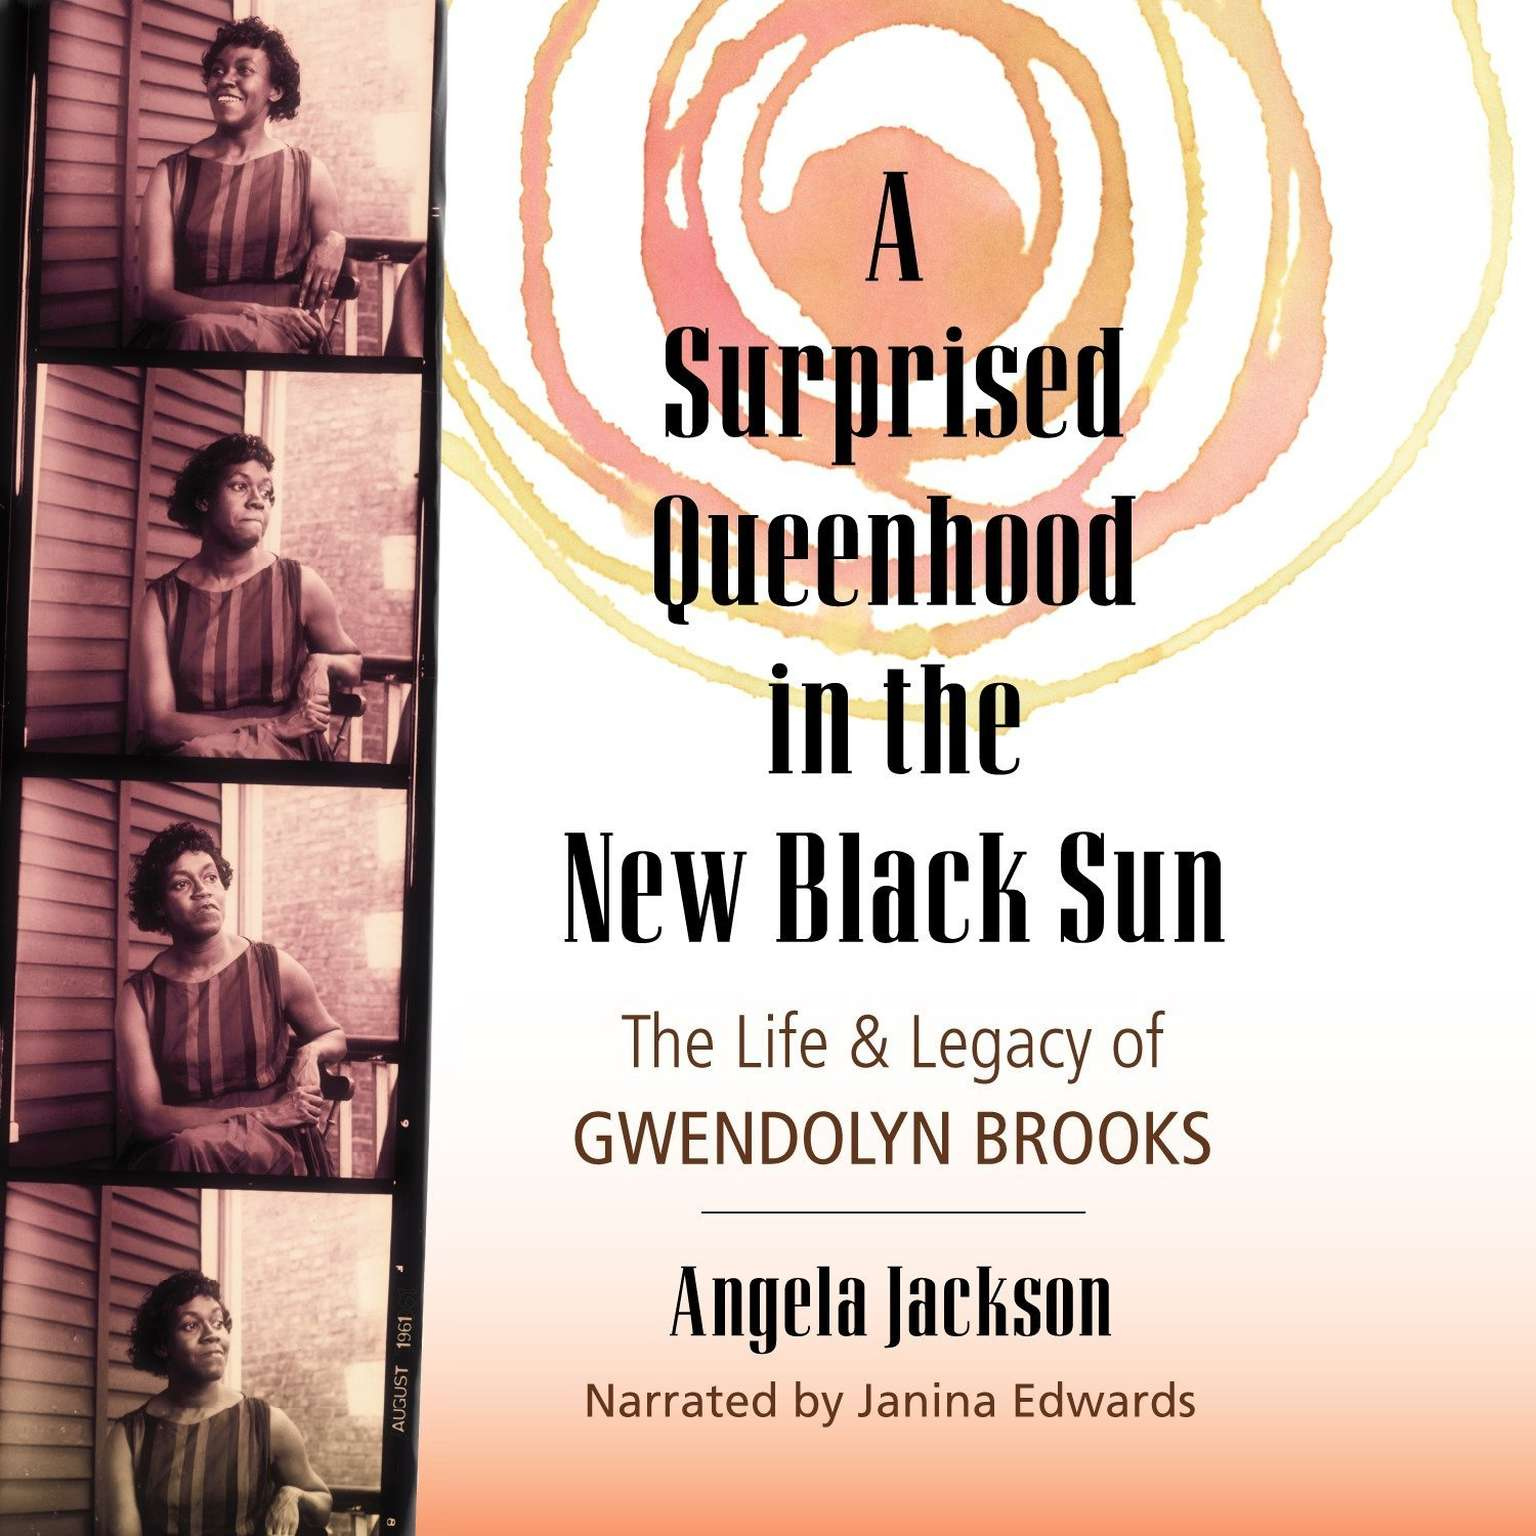 Printable A Surprised Queenhood in the New Black Sun: The Life & Legacy of Gwendolyn Brooks Audiobook Cover Art